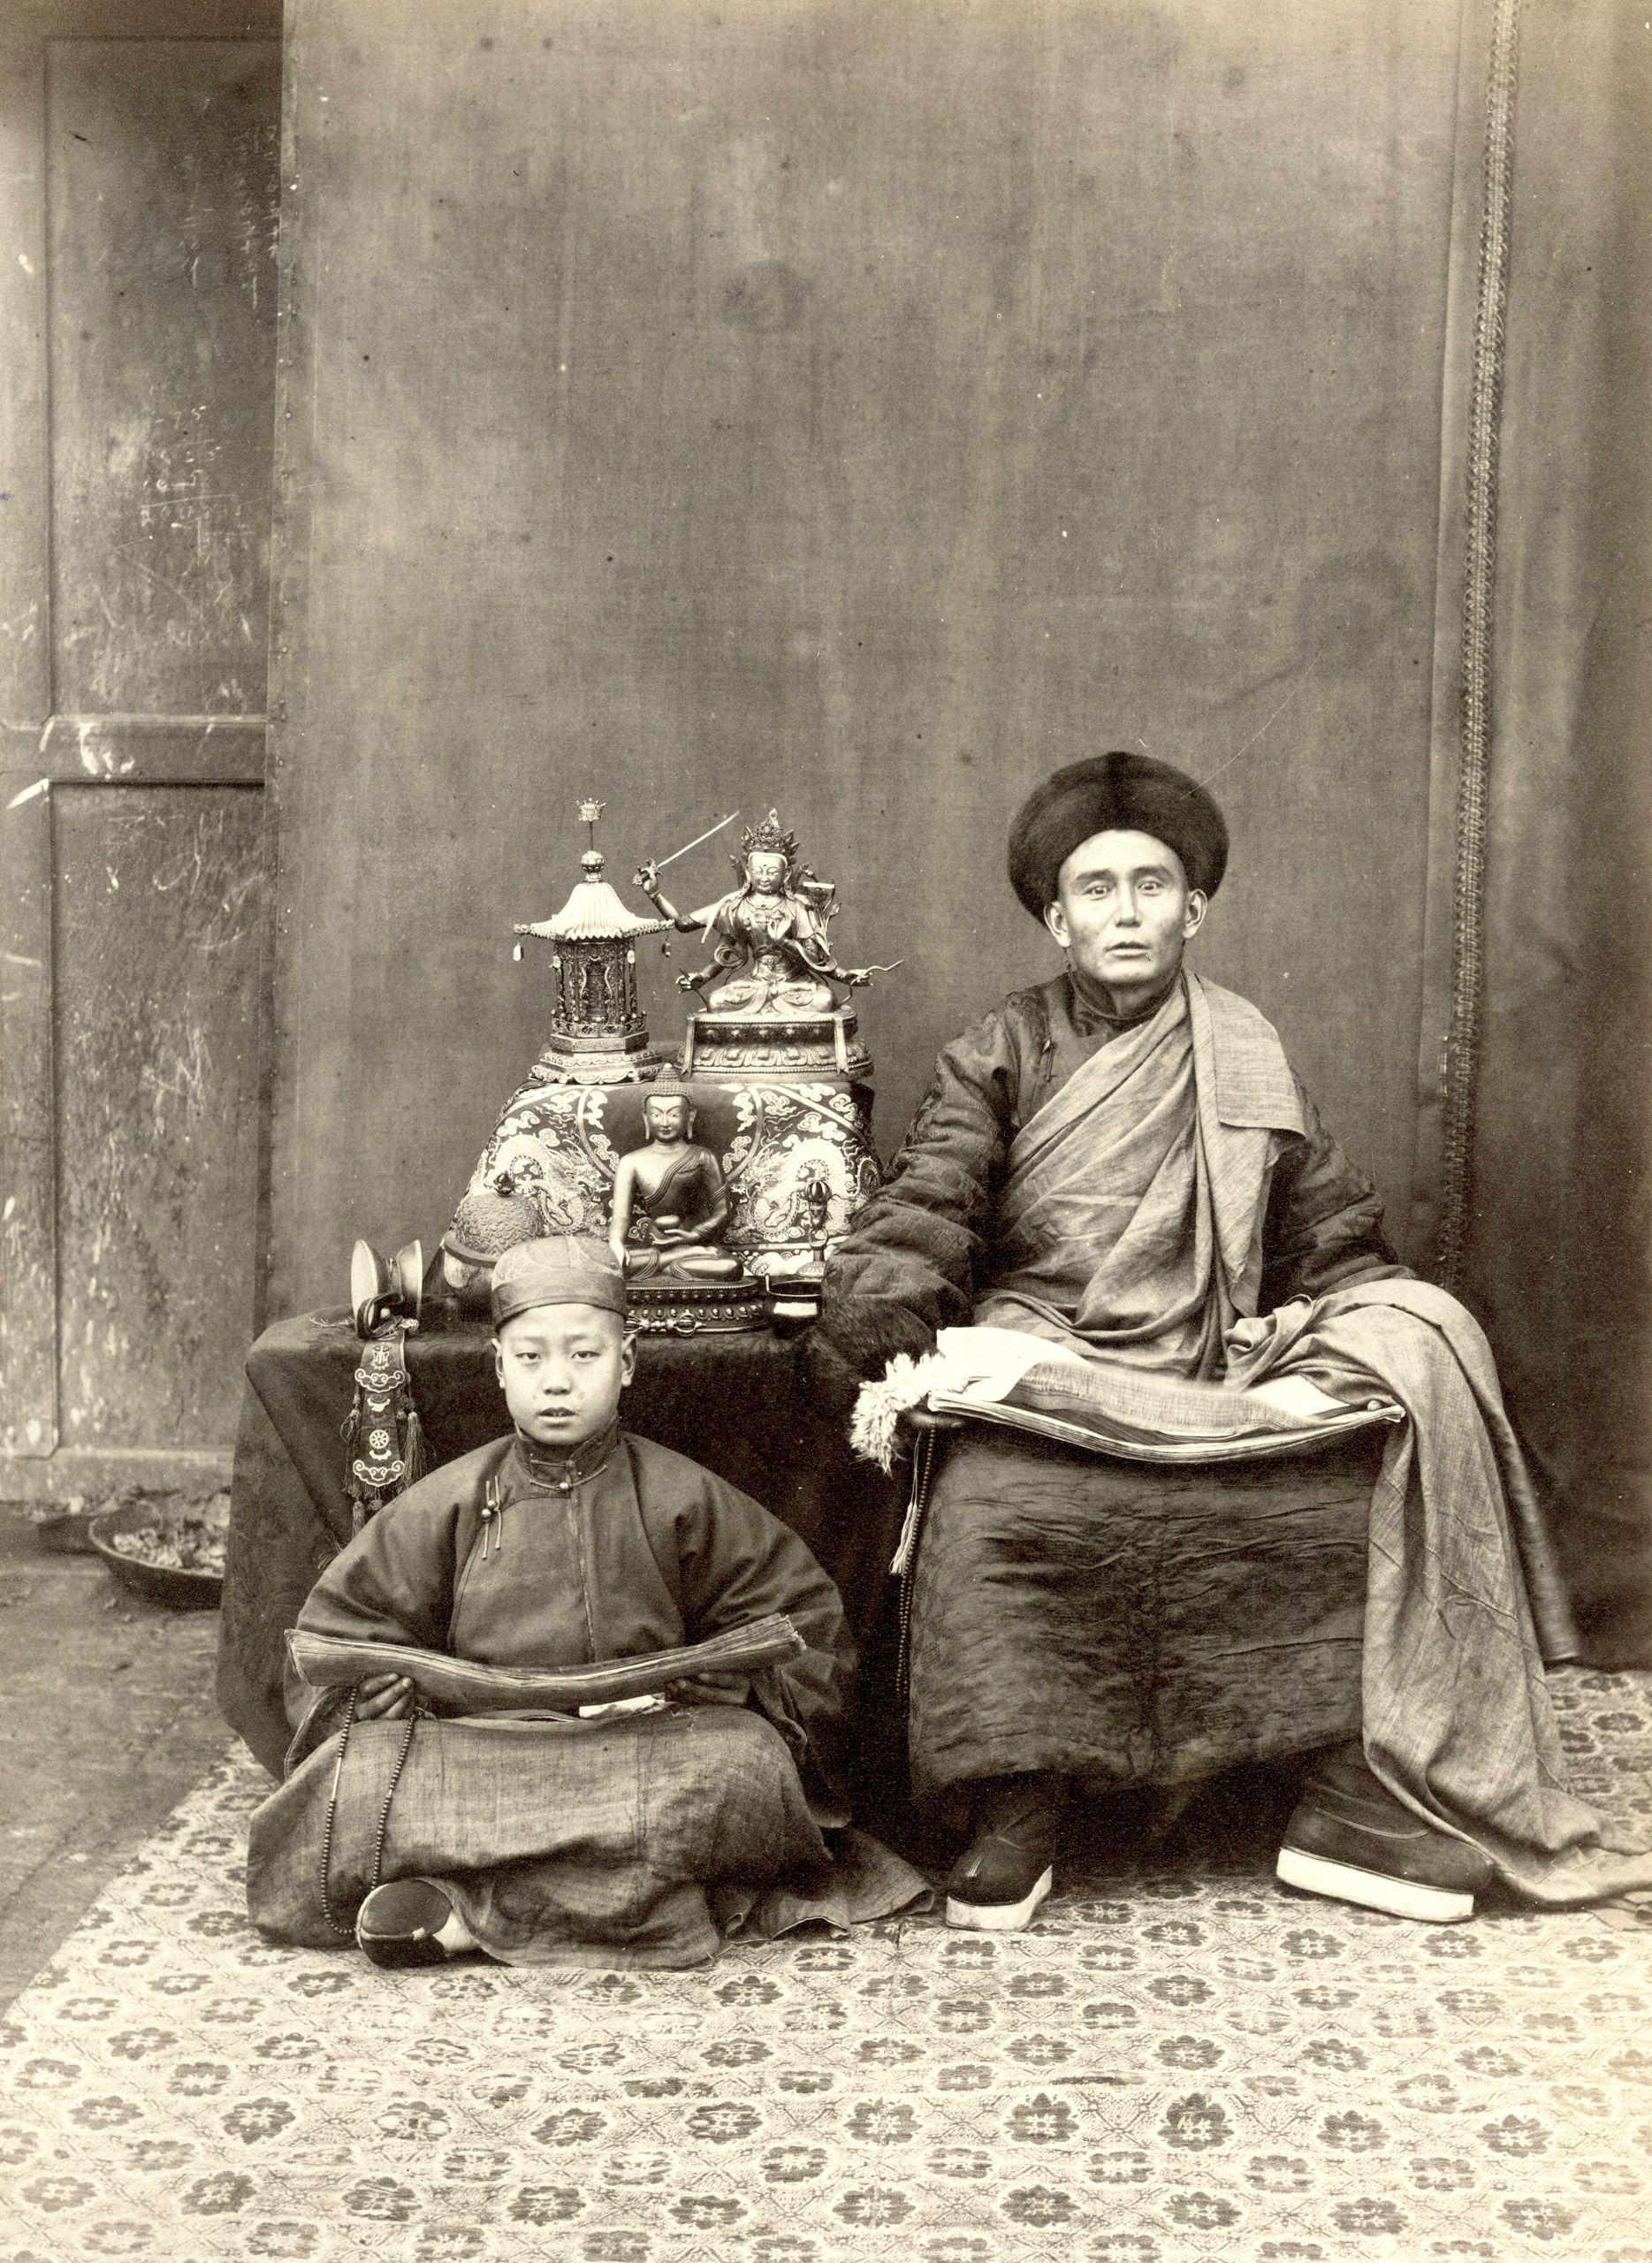 Caption from Stephan Lowentheil Collection. One of the earliest photographs of a religious figure in Peking. In the nineteenth century, the term 'lama' referred to any Tibetan Buddhist monk or teacher. The lama and his pupil both hold prayer beads and bundles of sutras in their laps. Displayed on the table are bronze sculptures and sacred Tibetan ritual objects including a cup made out of a human skull and a statue of Manjusri, bodhisattva of wisdom. One of the earliest photographs of such sacred objects, this image provides a valuable record of religious practice in the late Qing Dynasty.